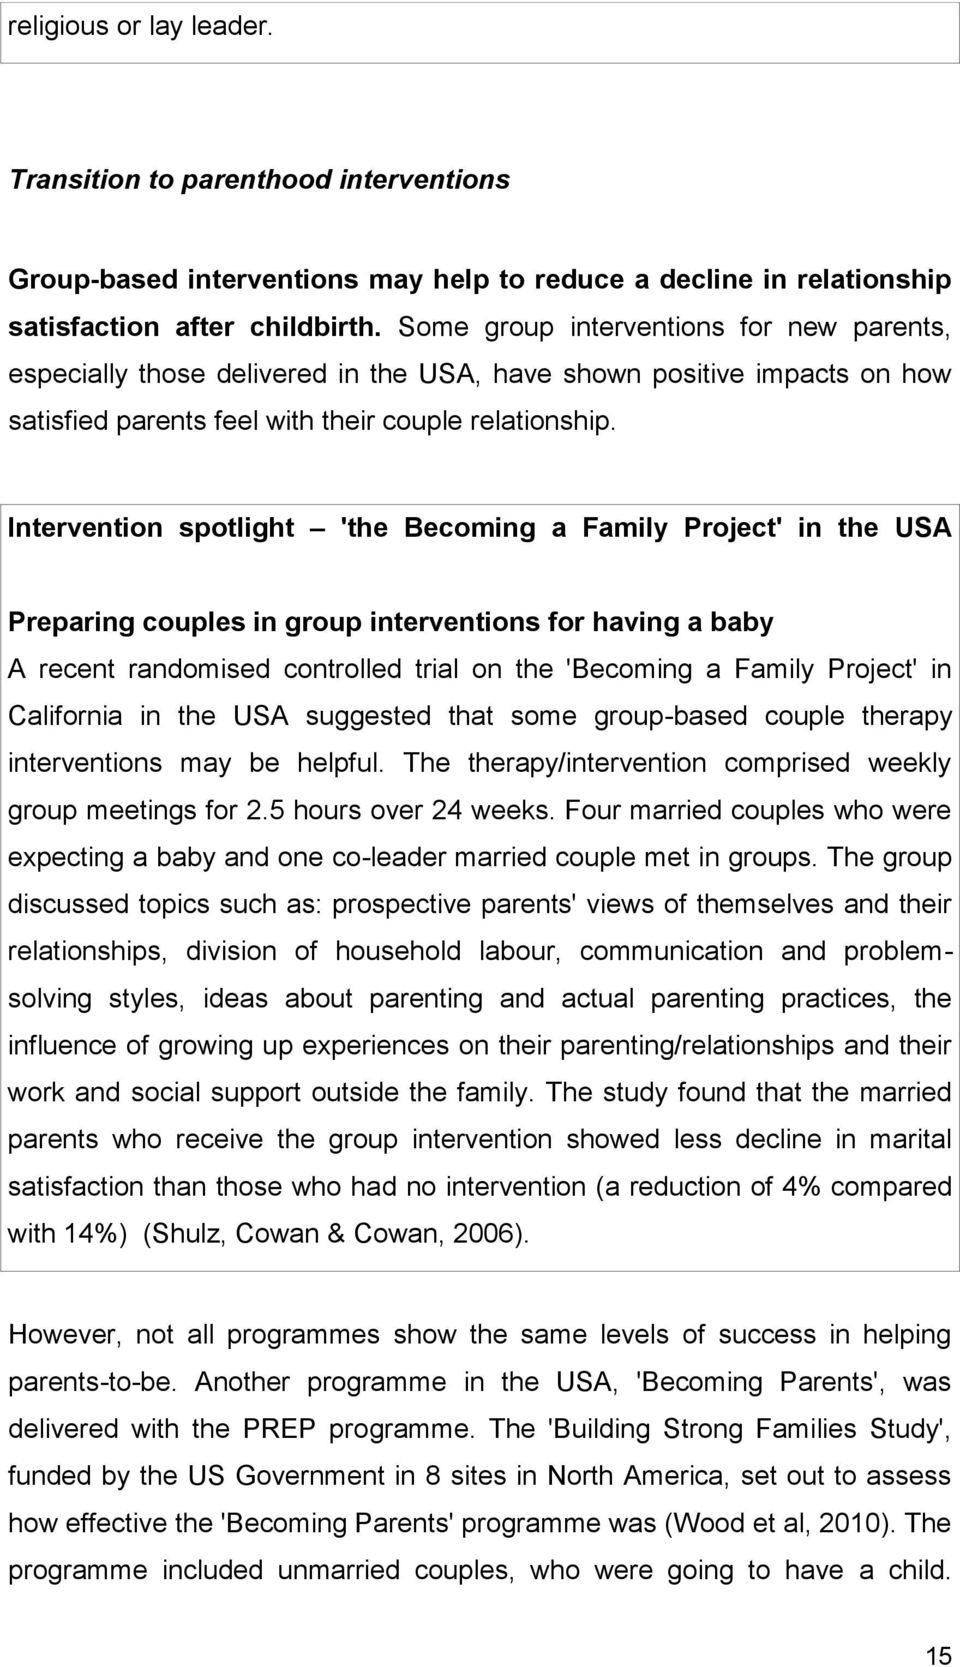 Intervention spotlight 'the Becoming a Family Project' in the USA Preparing couples in group interventions for having a baby A recent randomised controlled trial on the 'Becoming a Family Project' in